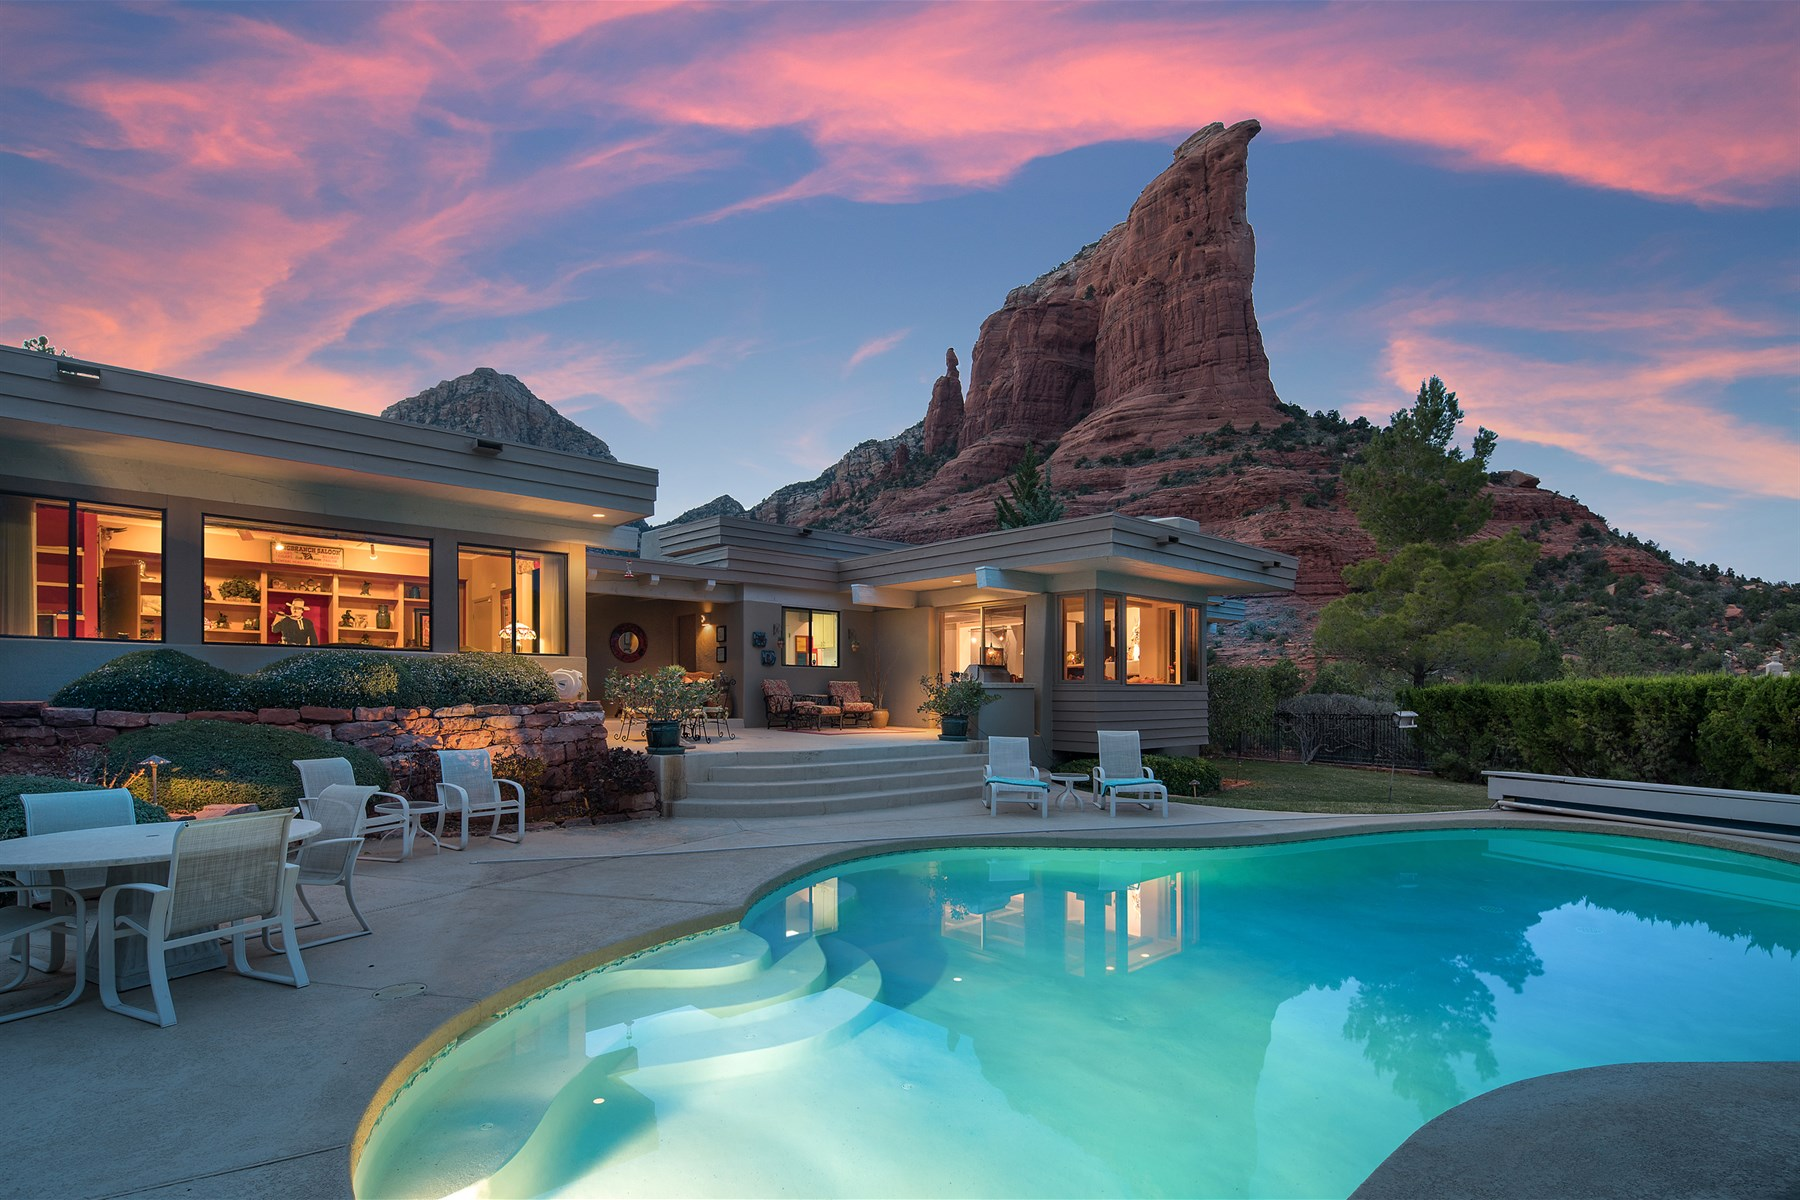 Villa per Vendita alle ore Single-level Frank Lloyd Wright architecturally inspired home 250 Shadow Rock Dr Sedona, Arizona, 86336 Stati Uniti